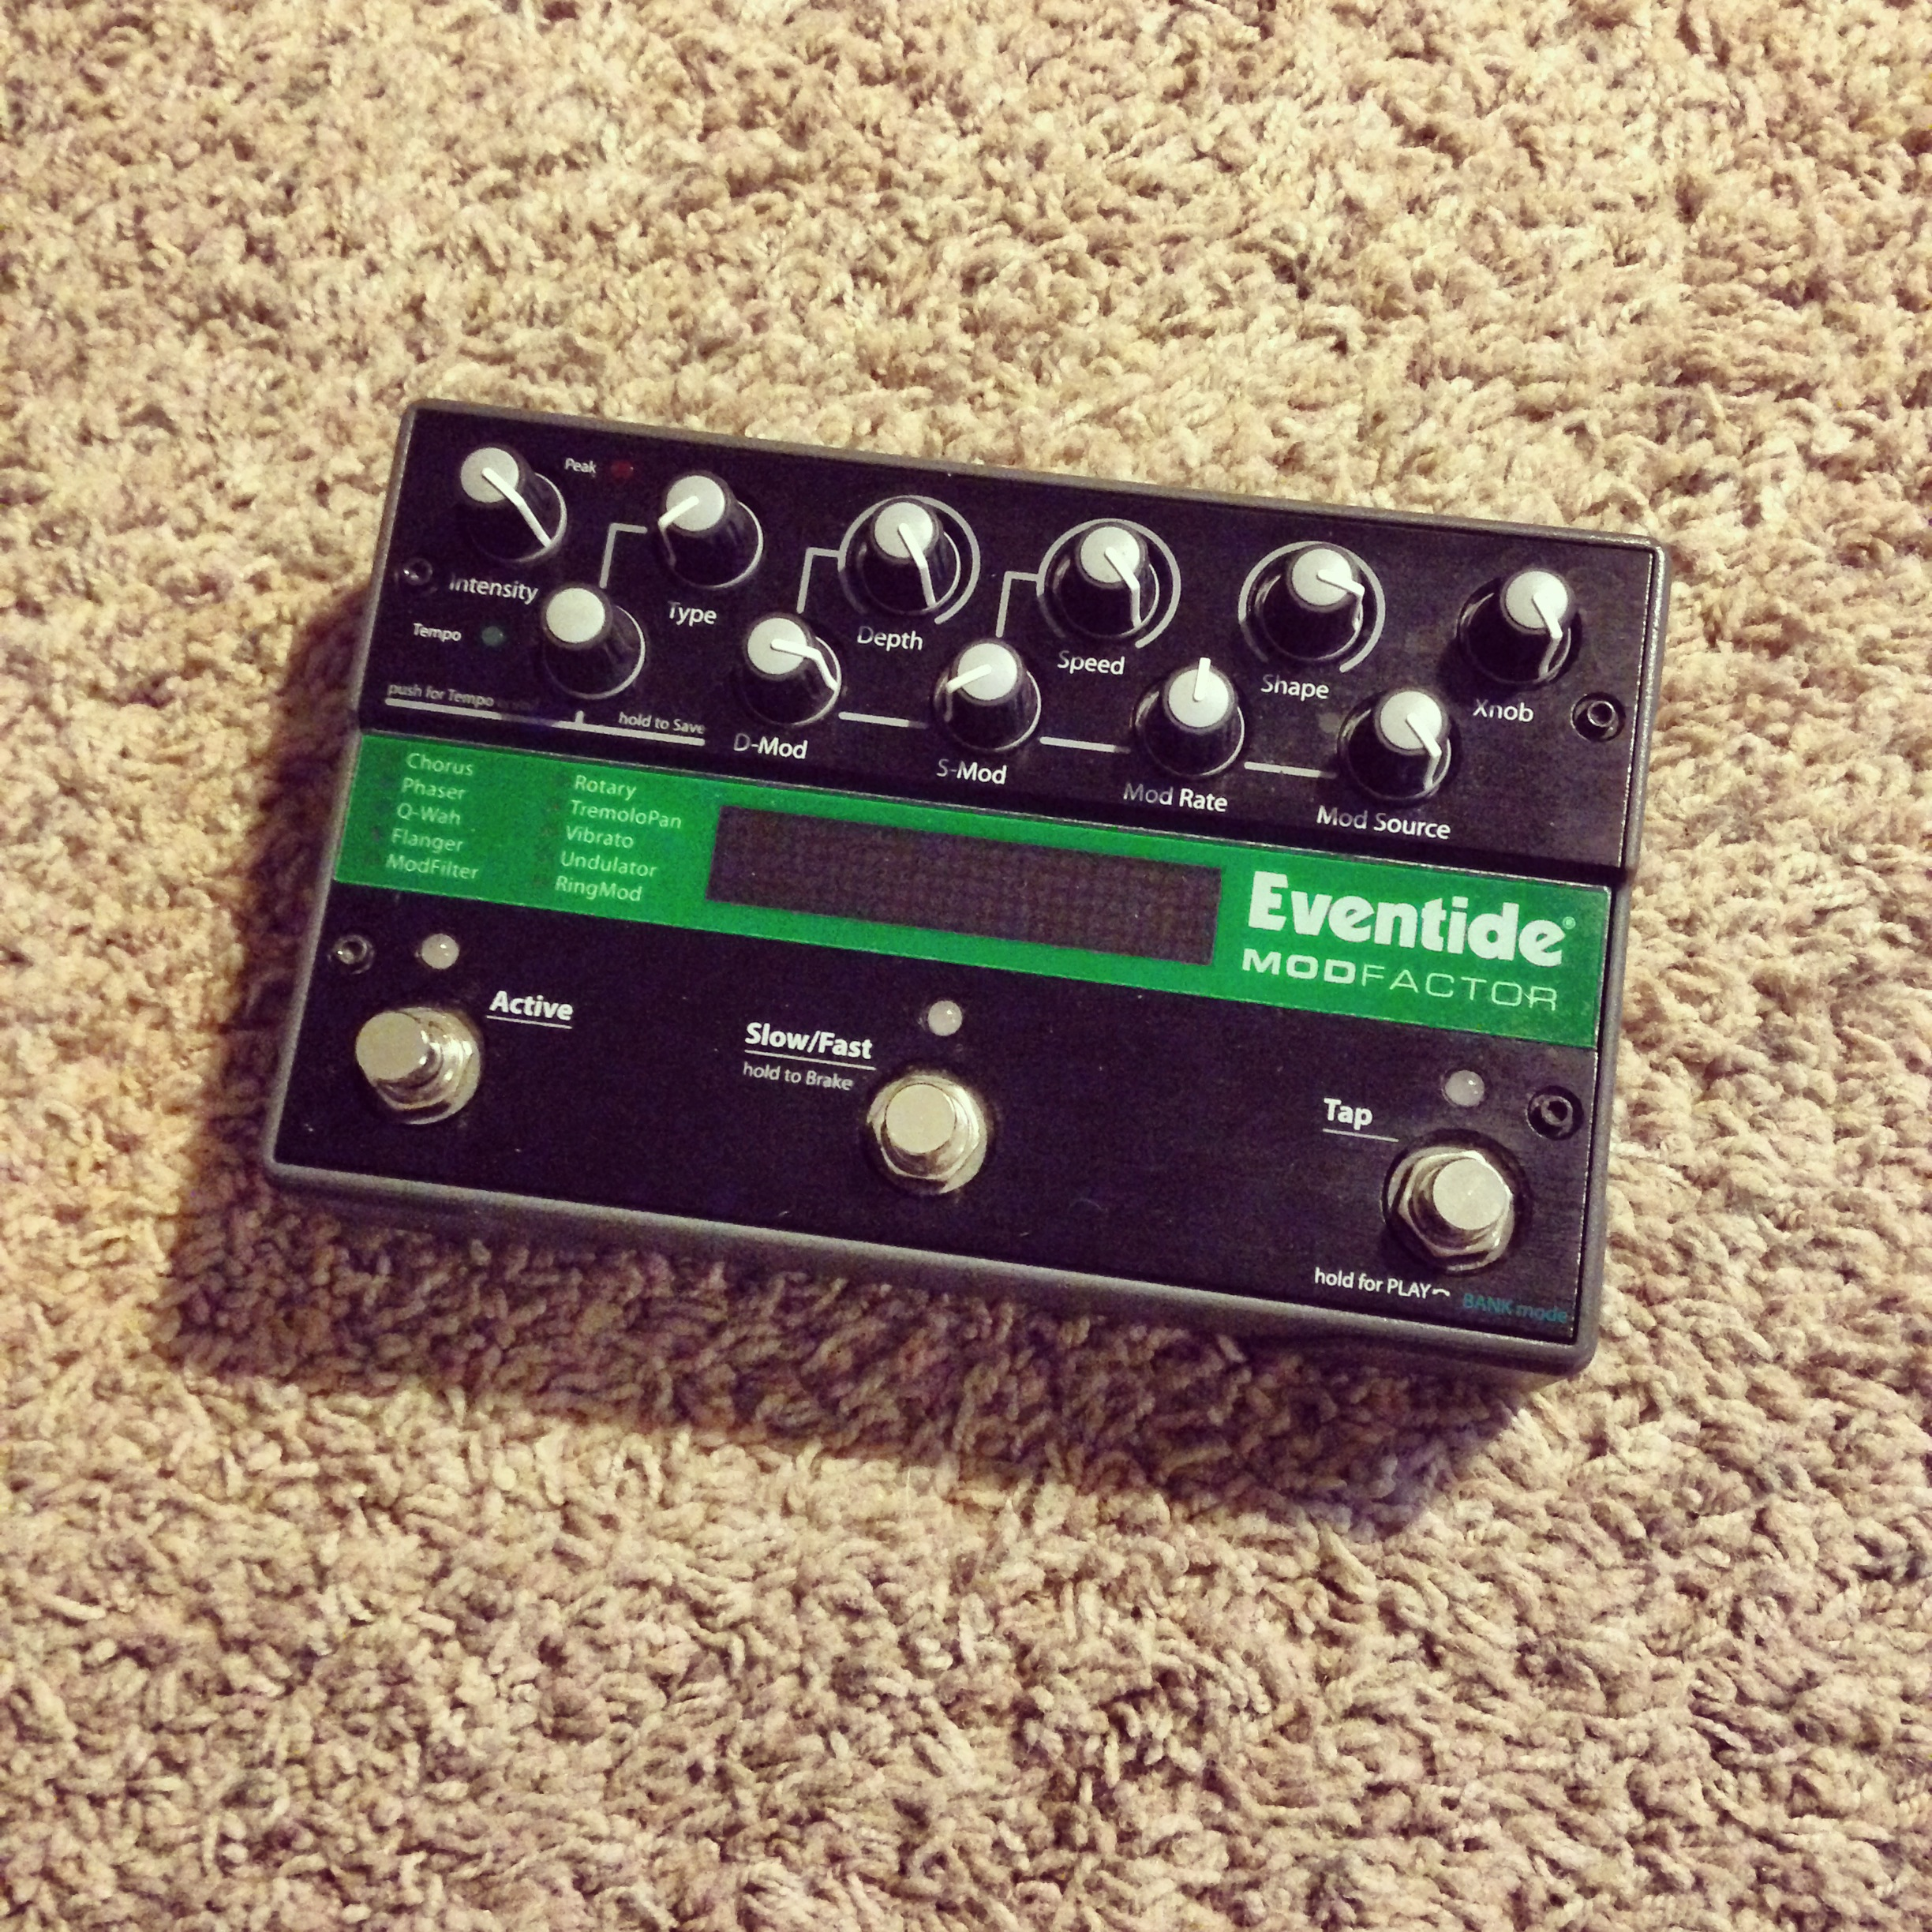 Eventide ModFactor Modulation Multi-Effect